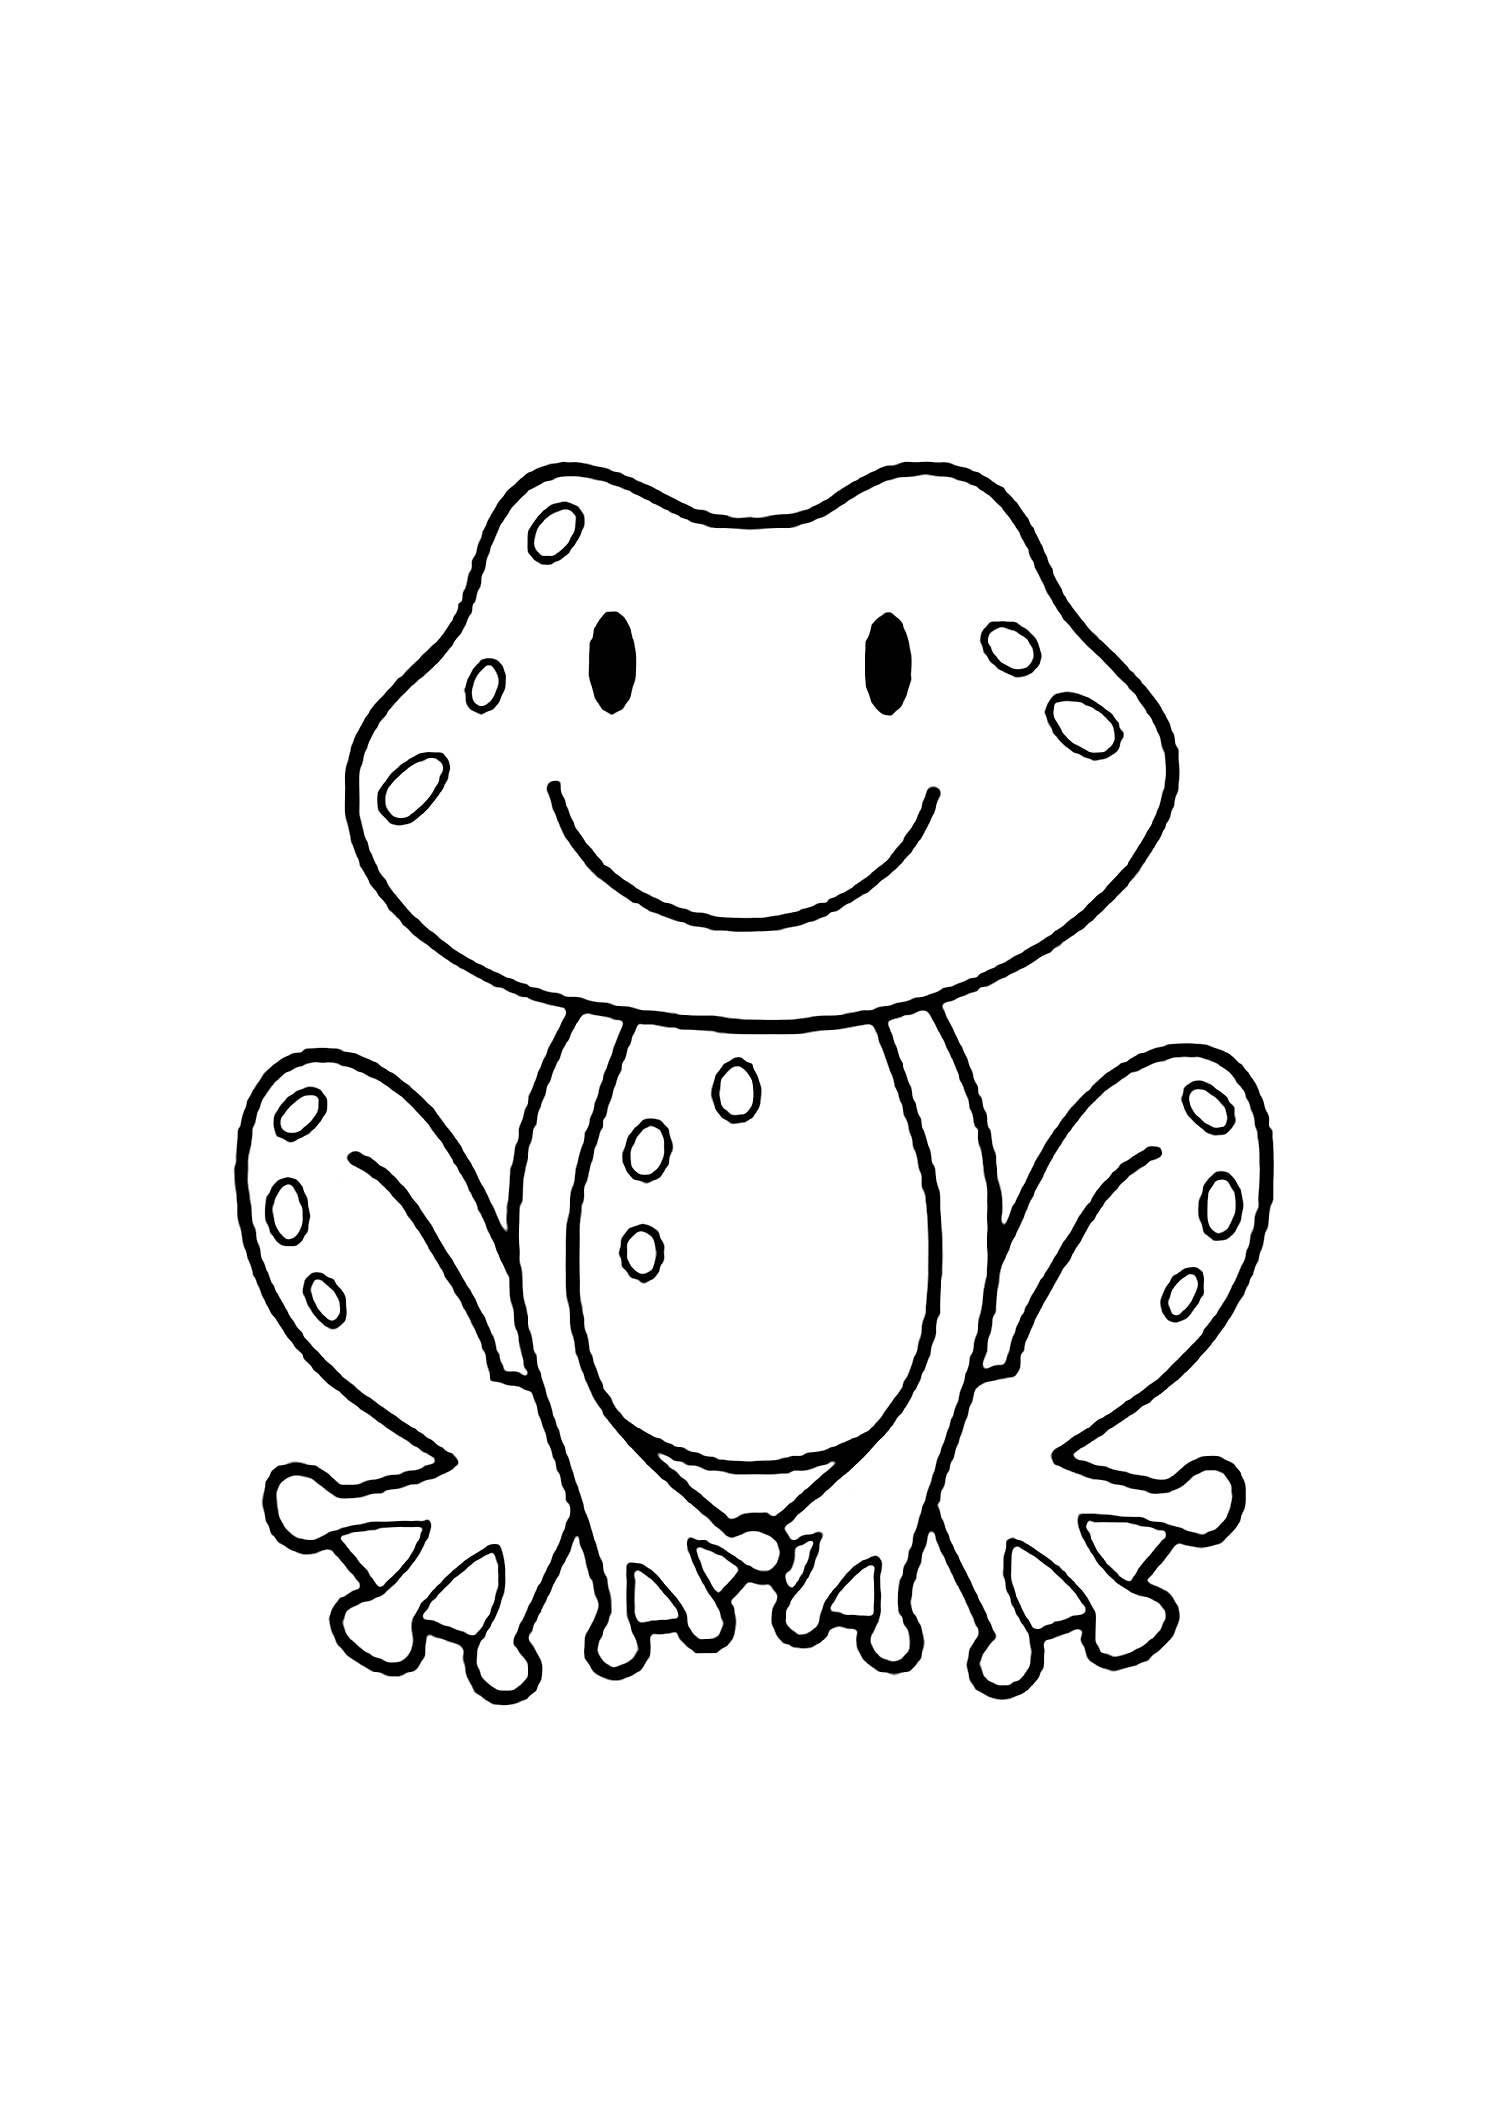 - Frogs To Color For Children - Frogs Kids Coloring Pages